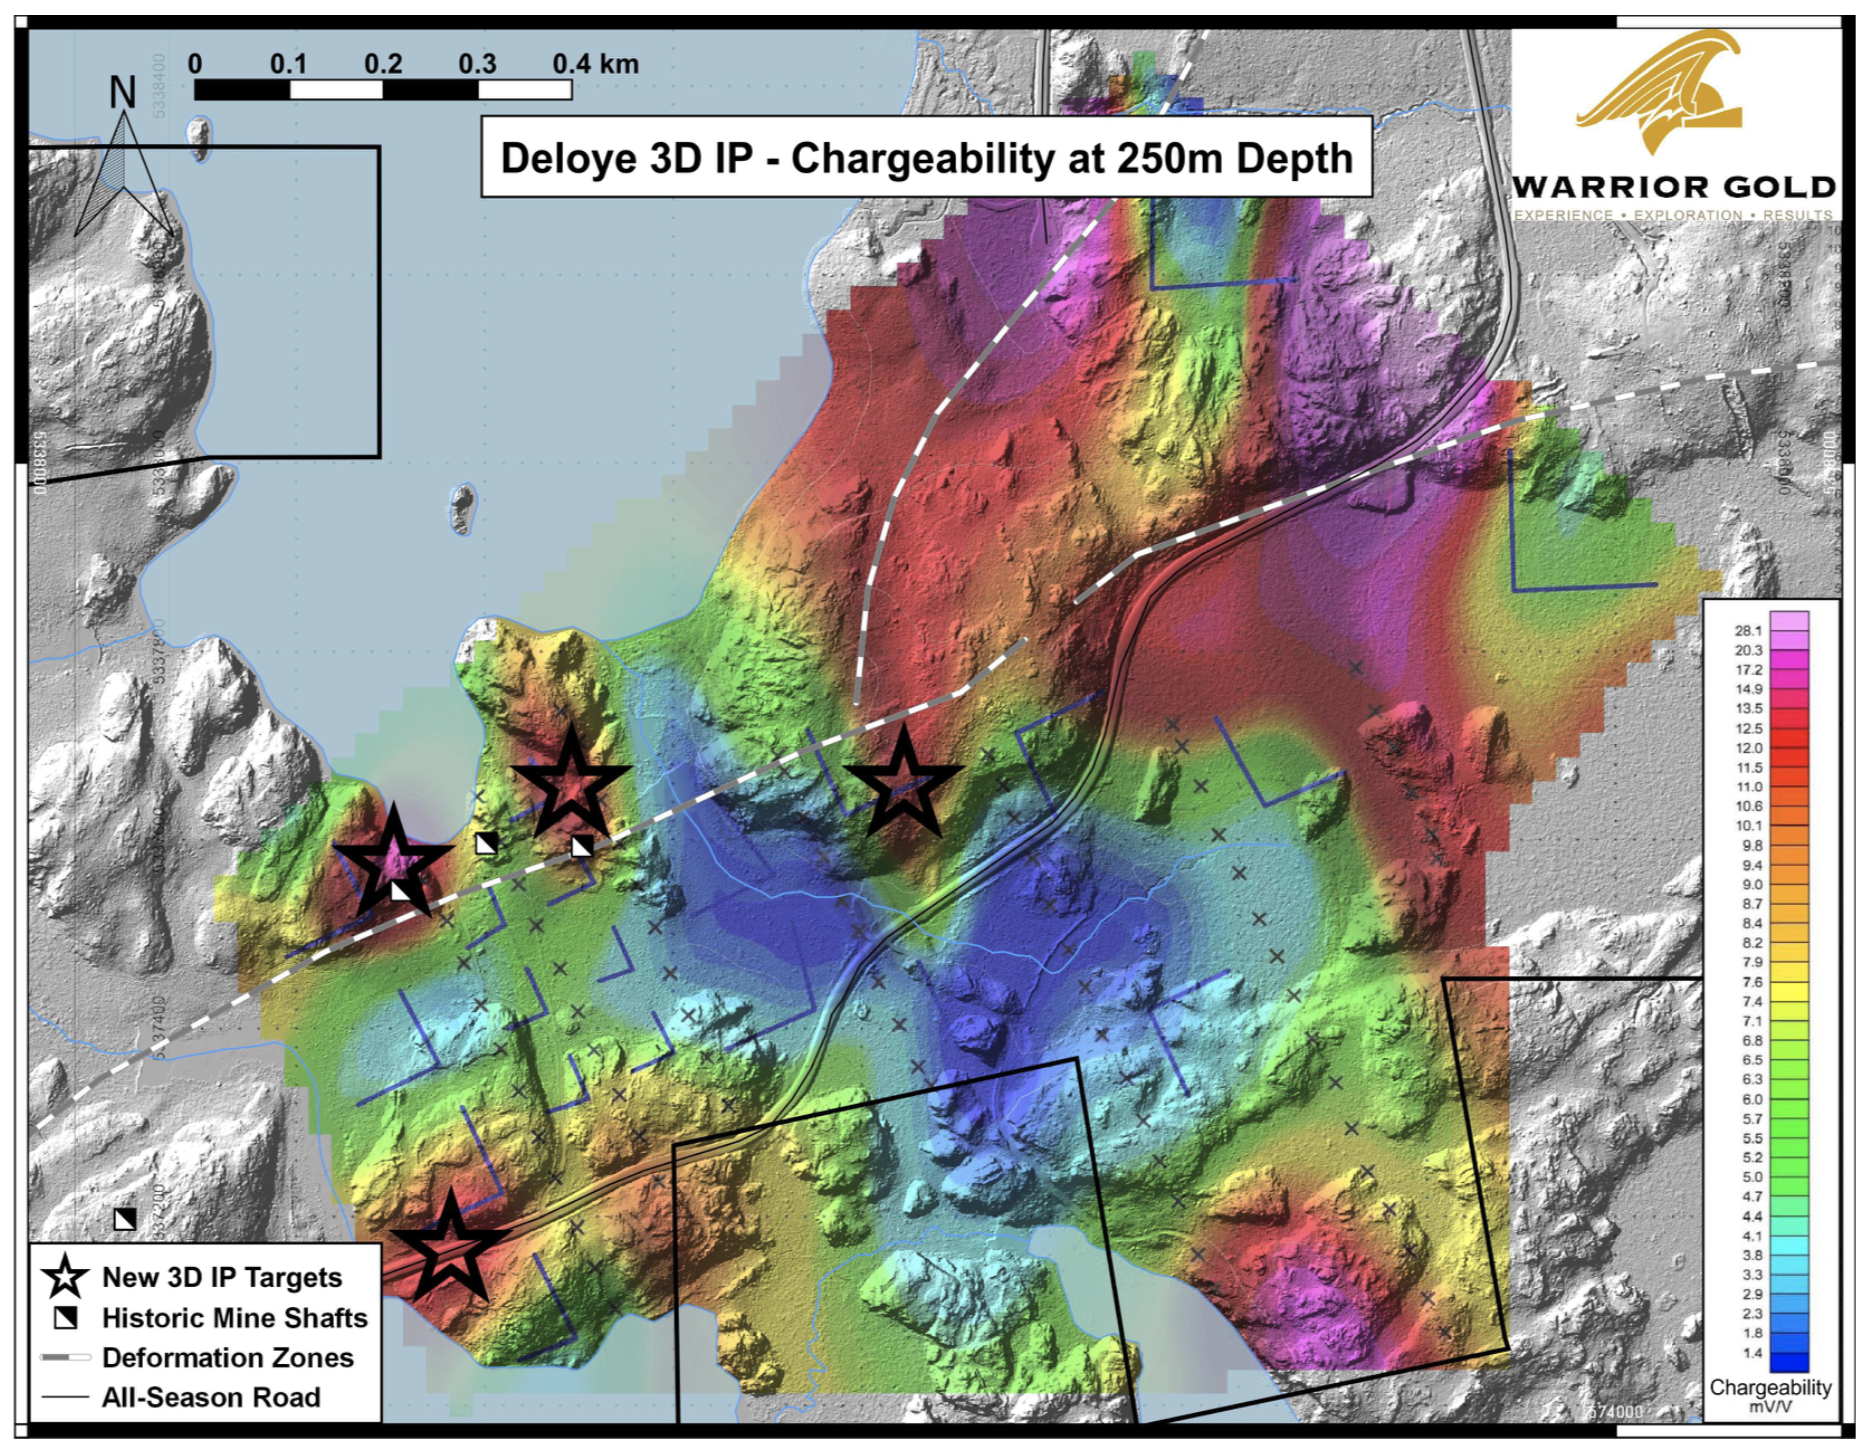 Figure 2. IRIS 3D IP Survey Results – Stars are newly identified target areas